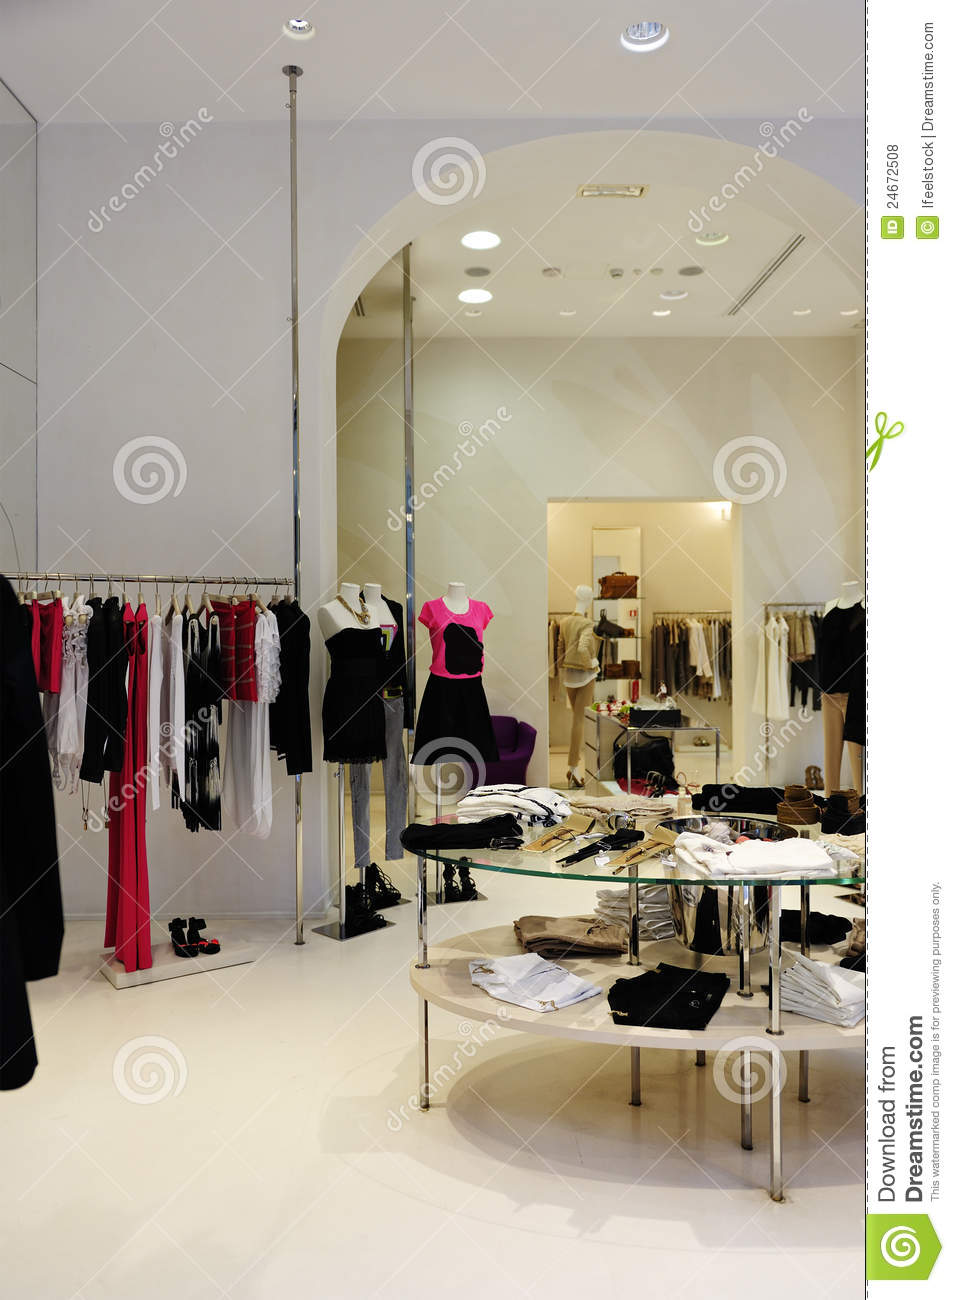 Online clothing stores    Vip clothing store